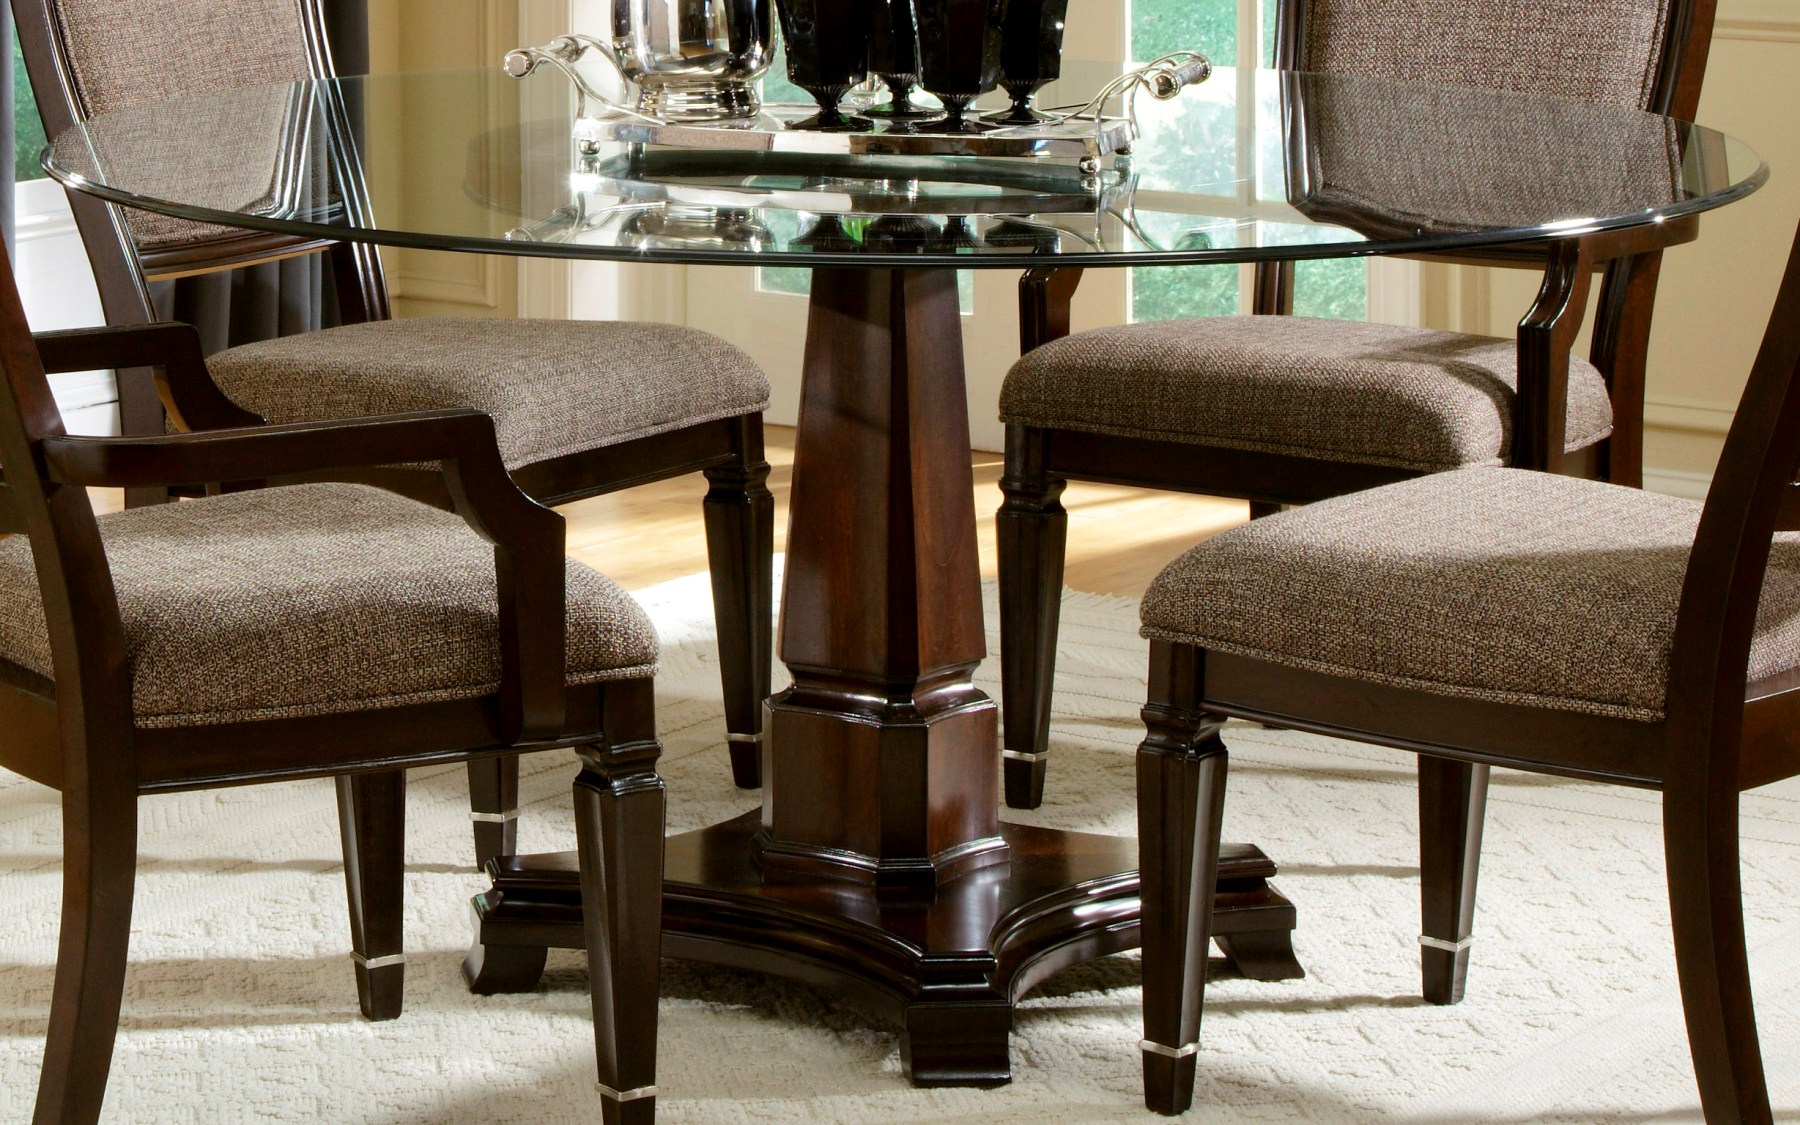 Brown Wooden Dining Table With Round Glass On Top